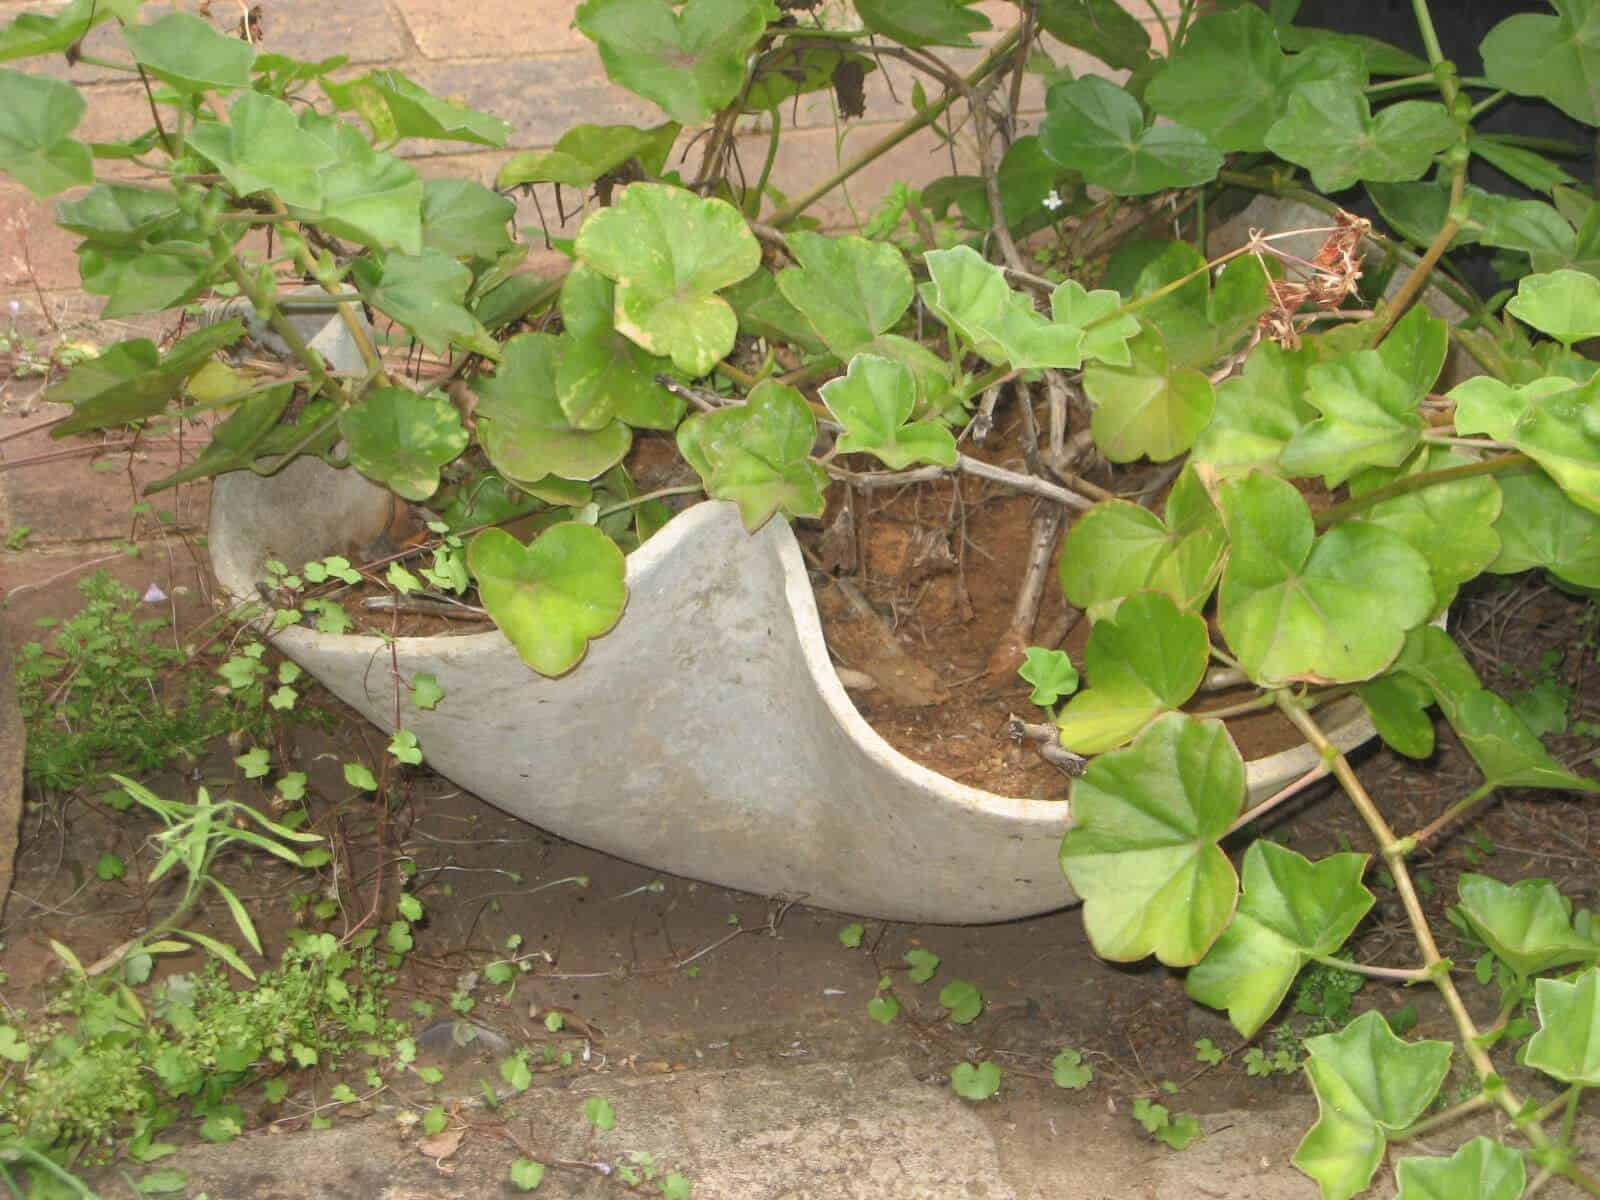 Asbestos Audits Queensland AAQ PL - Asbestos in Flower Pots